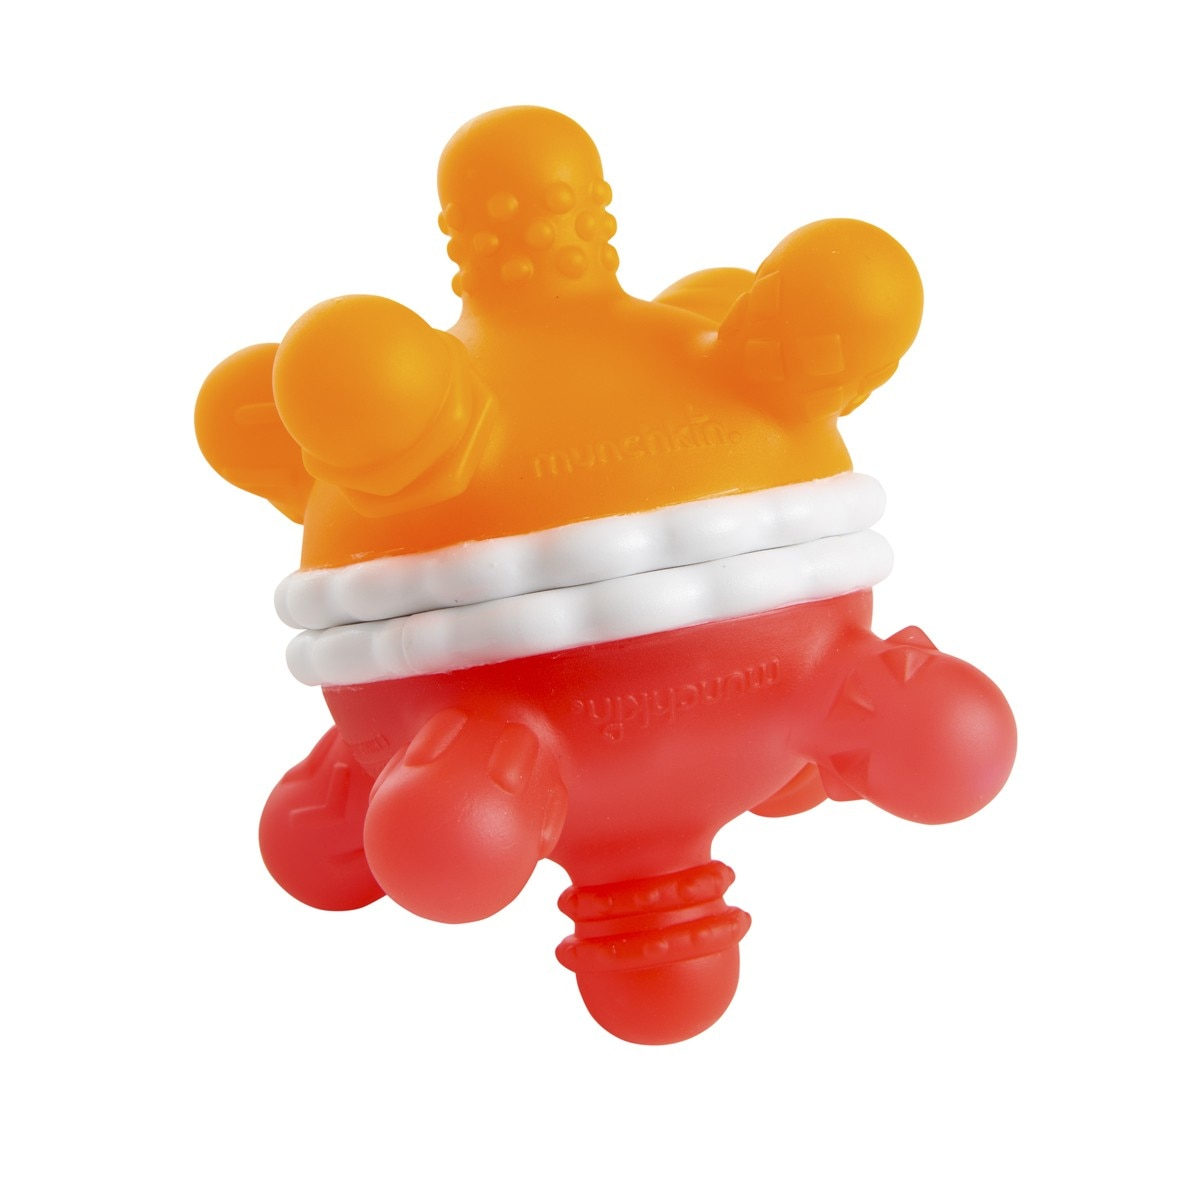 Munchkin Twisty Ball Teether Toy, 1 Pack - Red/Orange